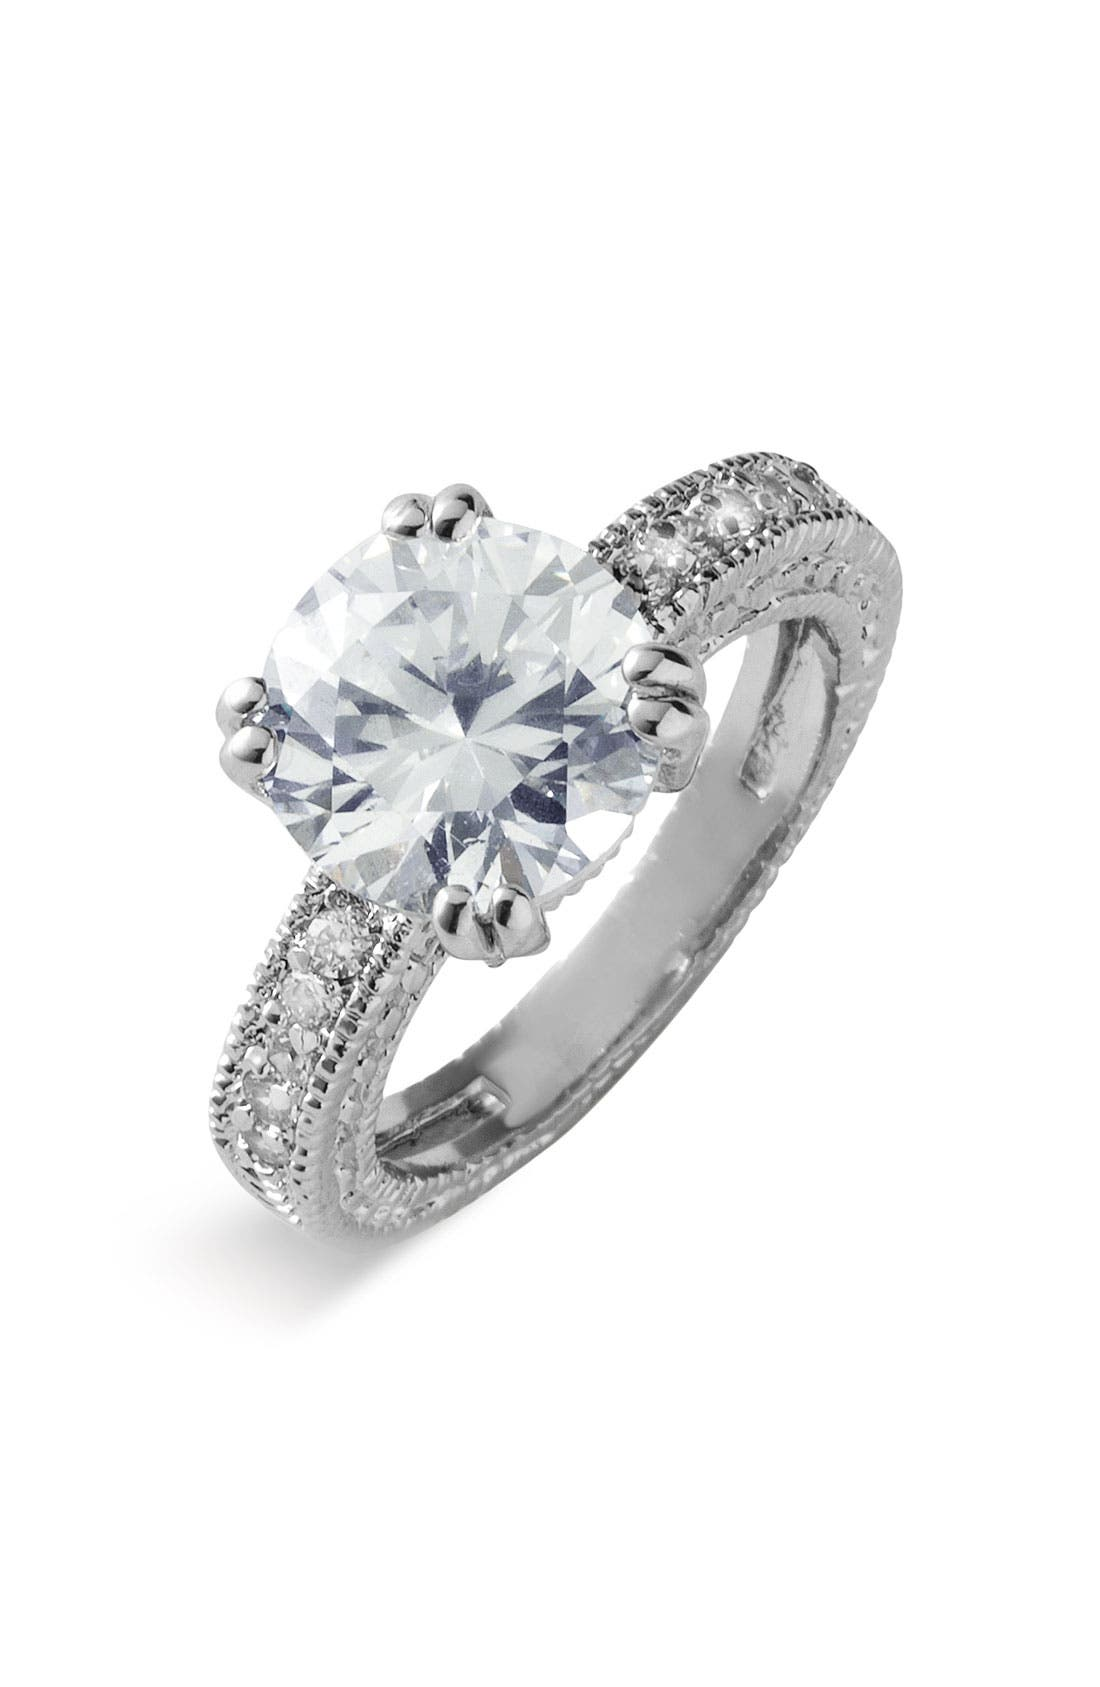 Main Image - Ariella Collection 'Antique Detail' Round Ring